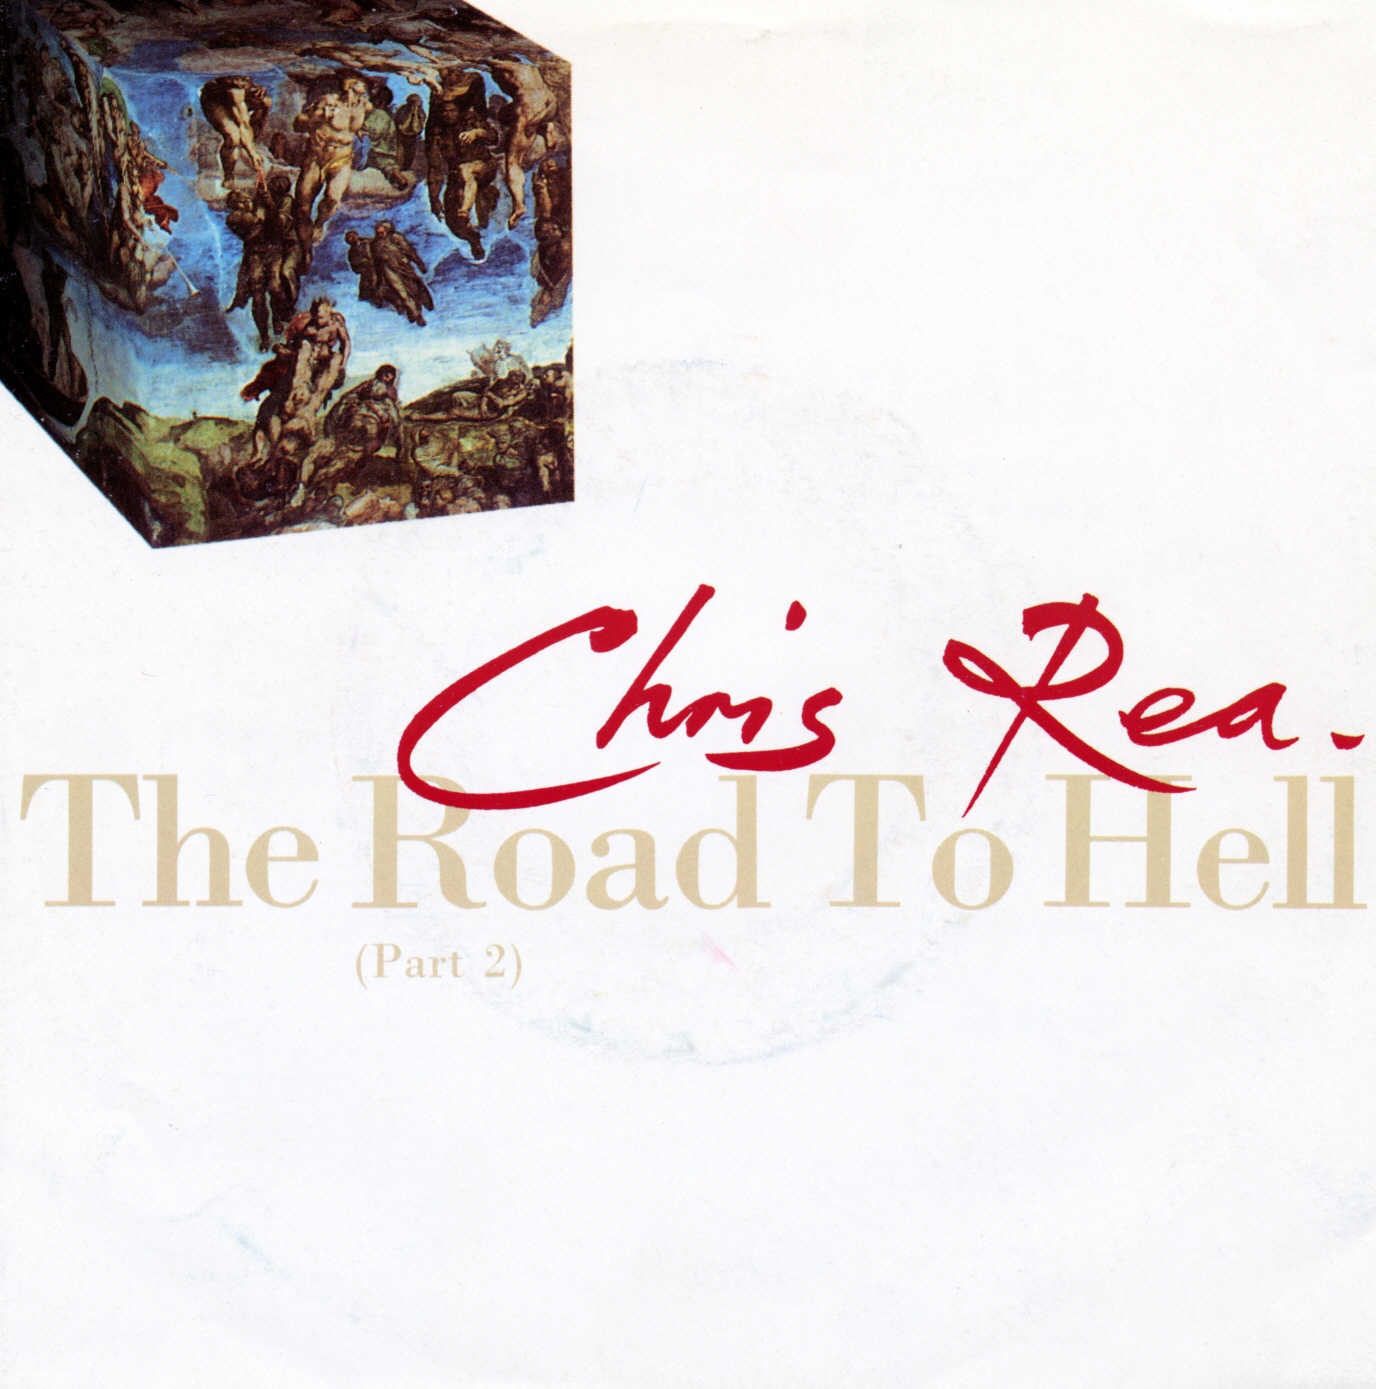 Cover: The road to hell, Part 2, Chris Rea